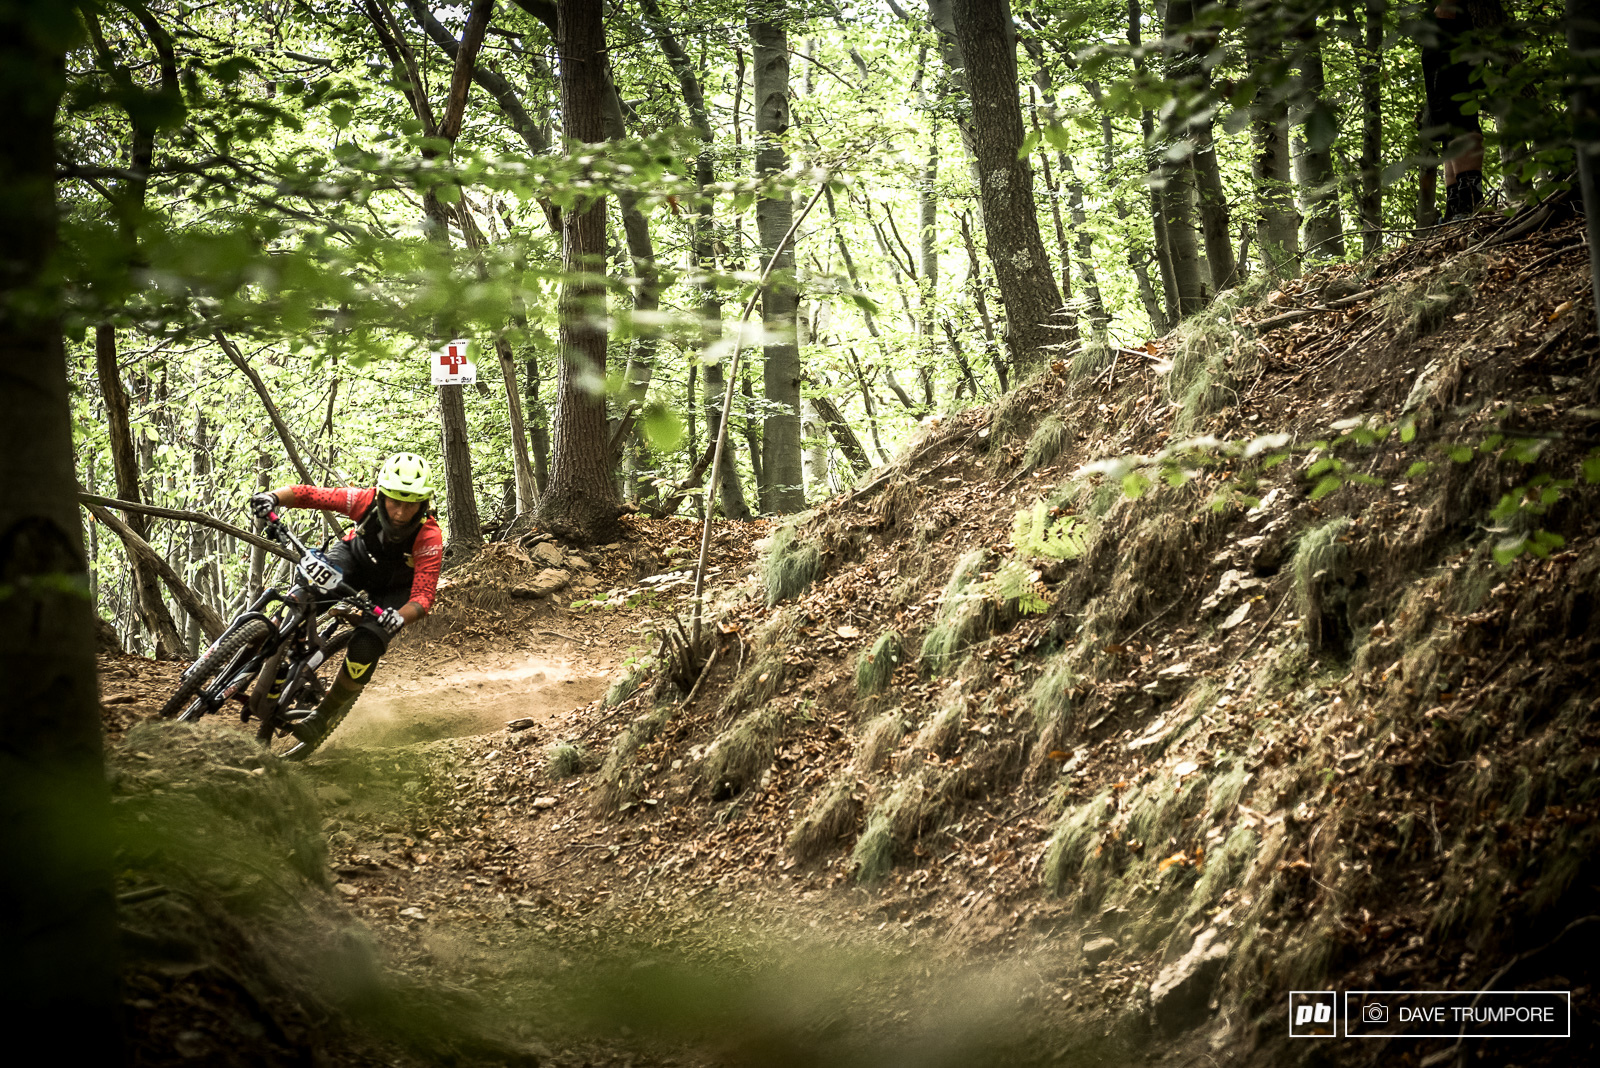 Anka Martin raced her finale EWS today in Finale Ligure and while she will still be very active in the MTB community it sounds like her days of racing are coming to an end. Bravo Anka.